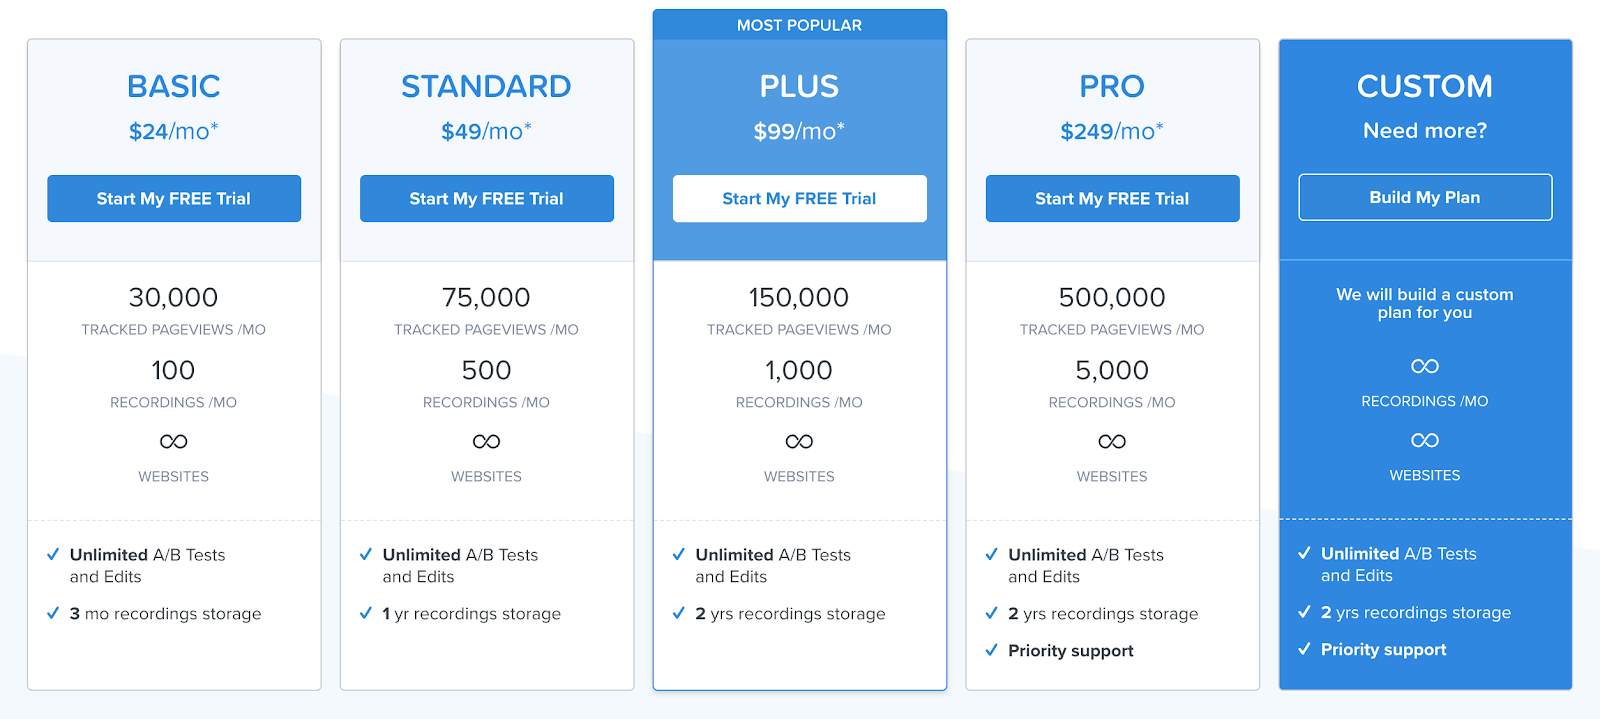 Crazy Egg pricing: Basic is $24/month, Standard is $49/month, Plus is $99/month, Pro is $249/month. You can reach out about custom pricing plans.